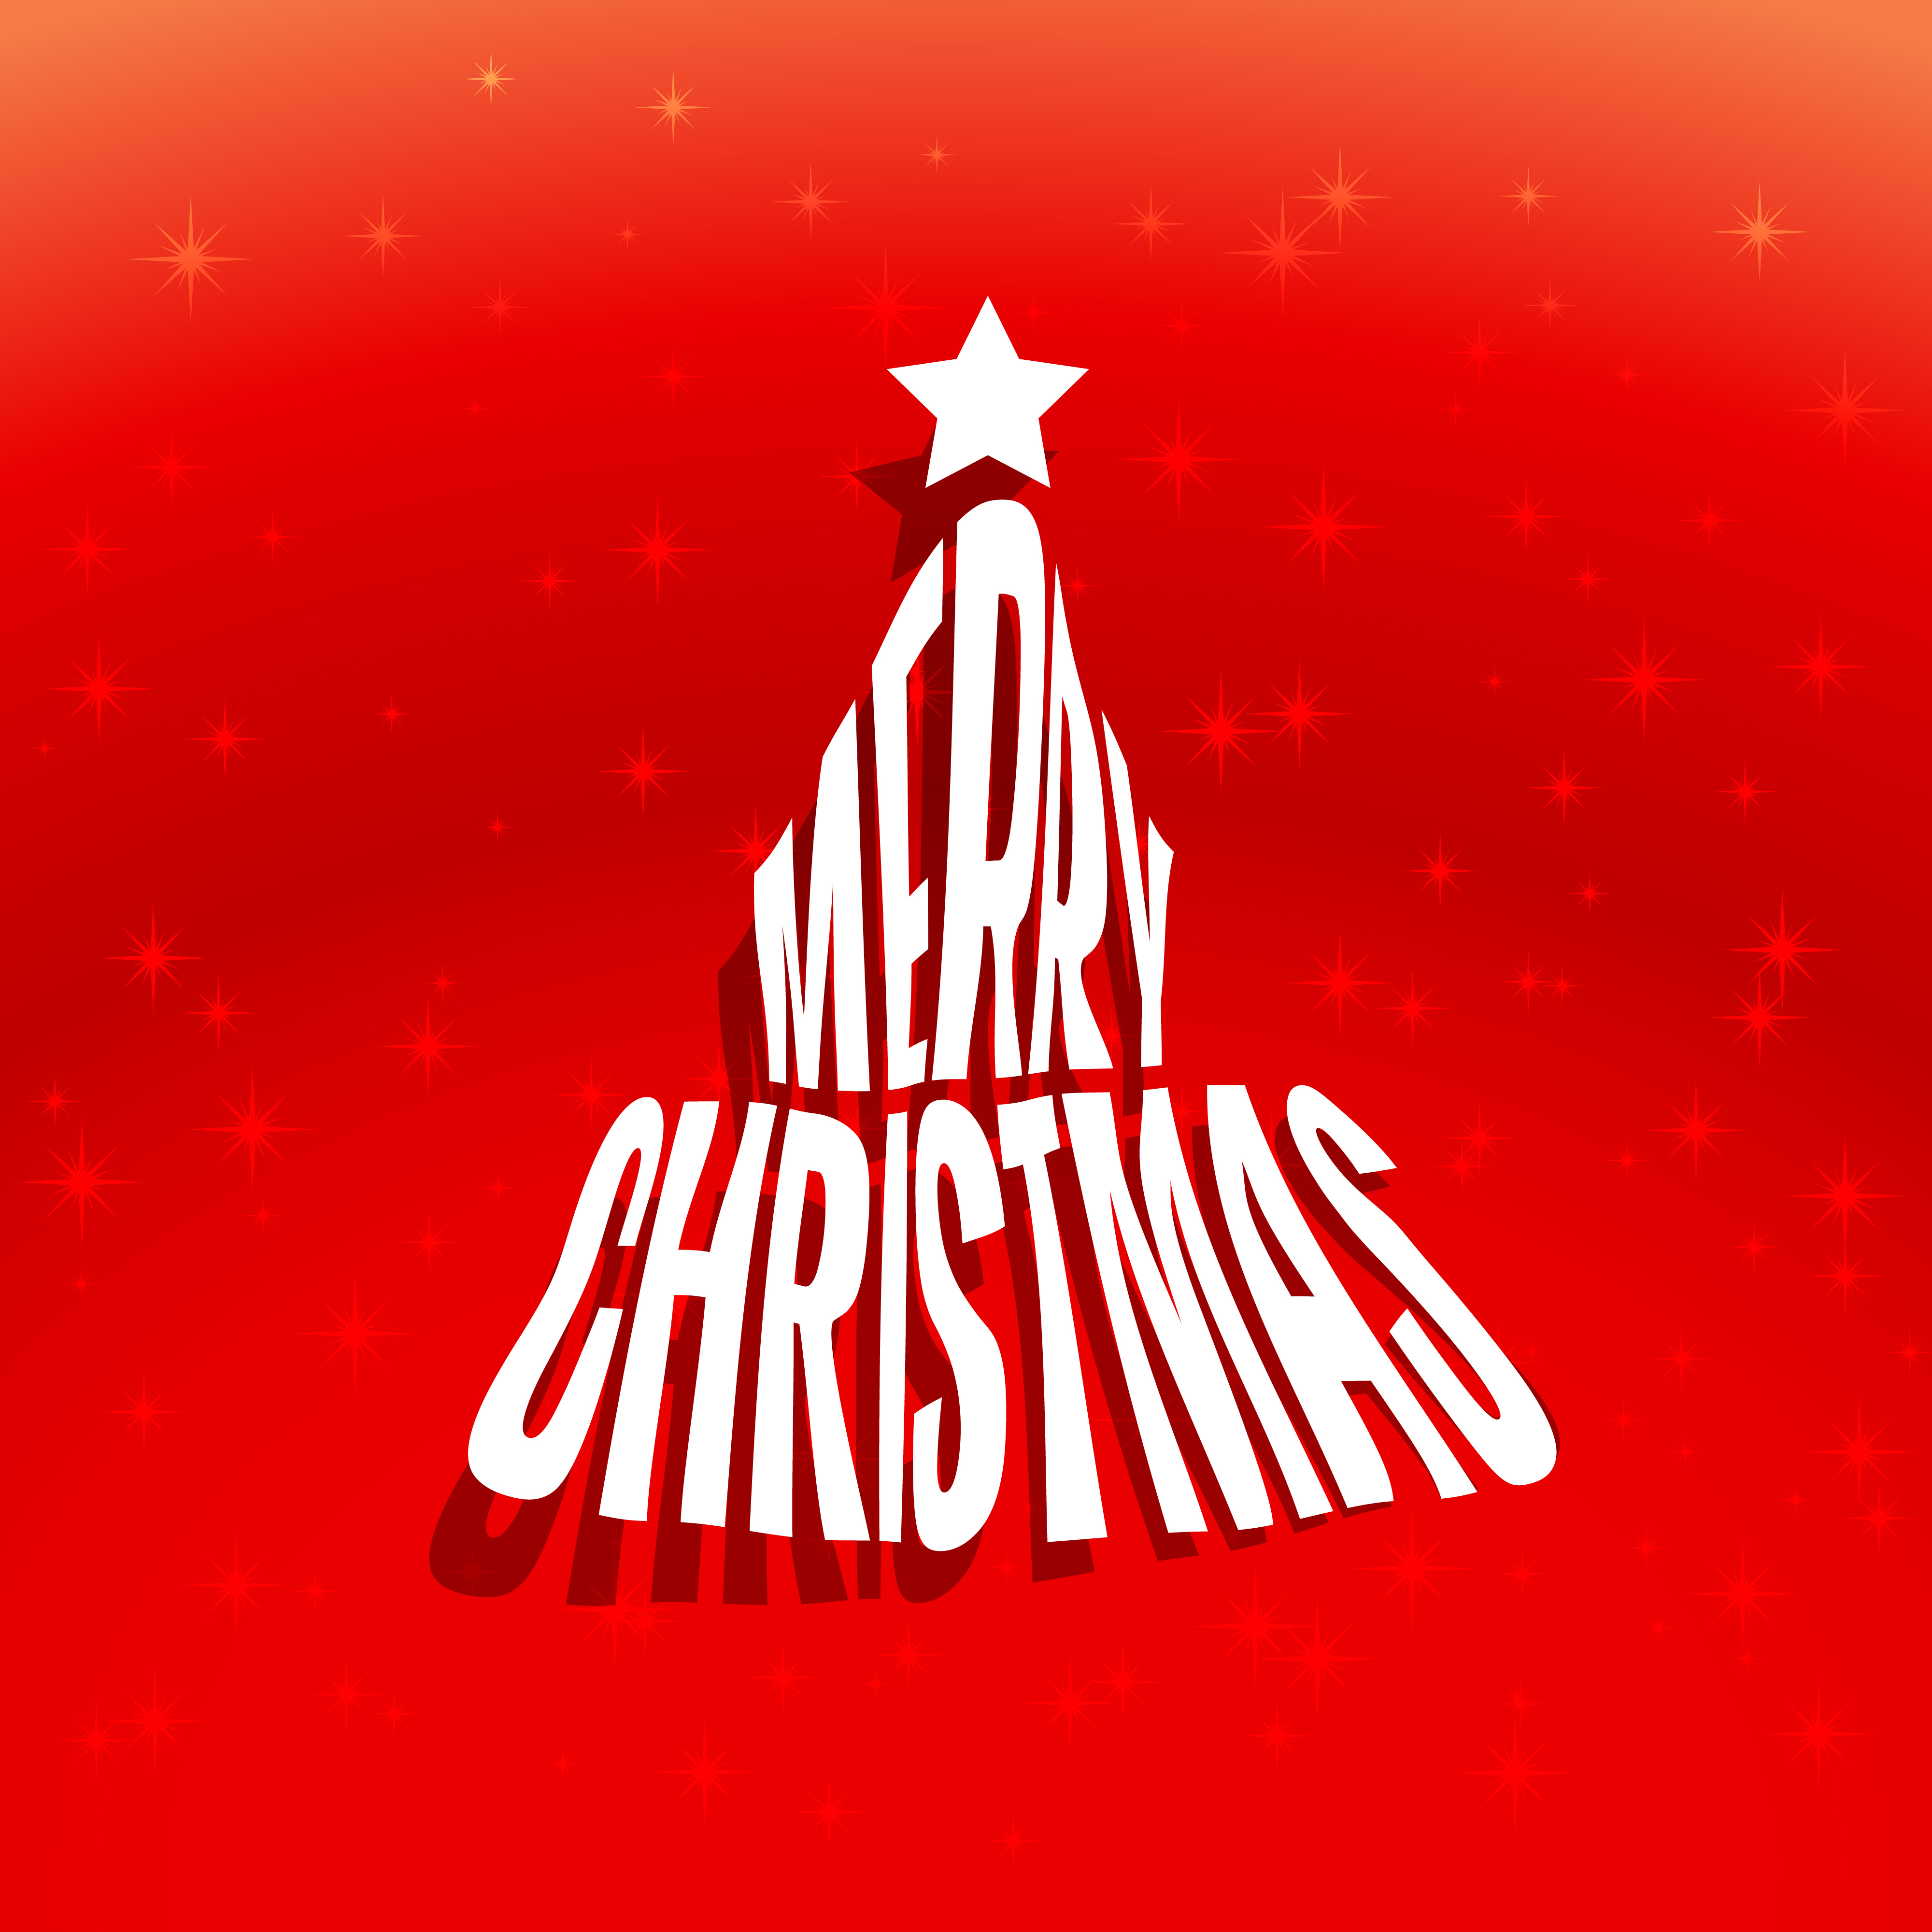 Merry Christmas Text Free Vector Art - (11643 Free Downloads)